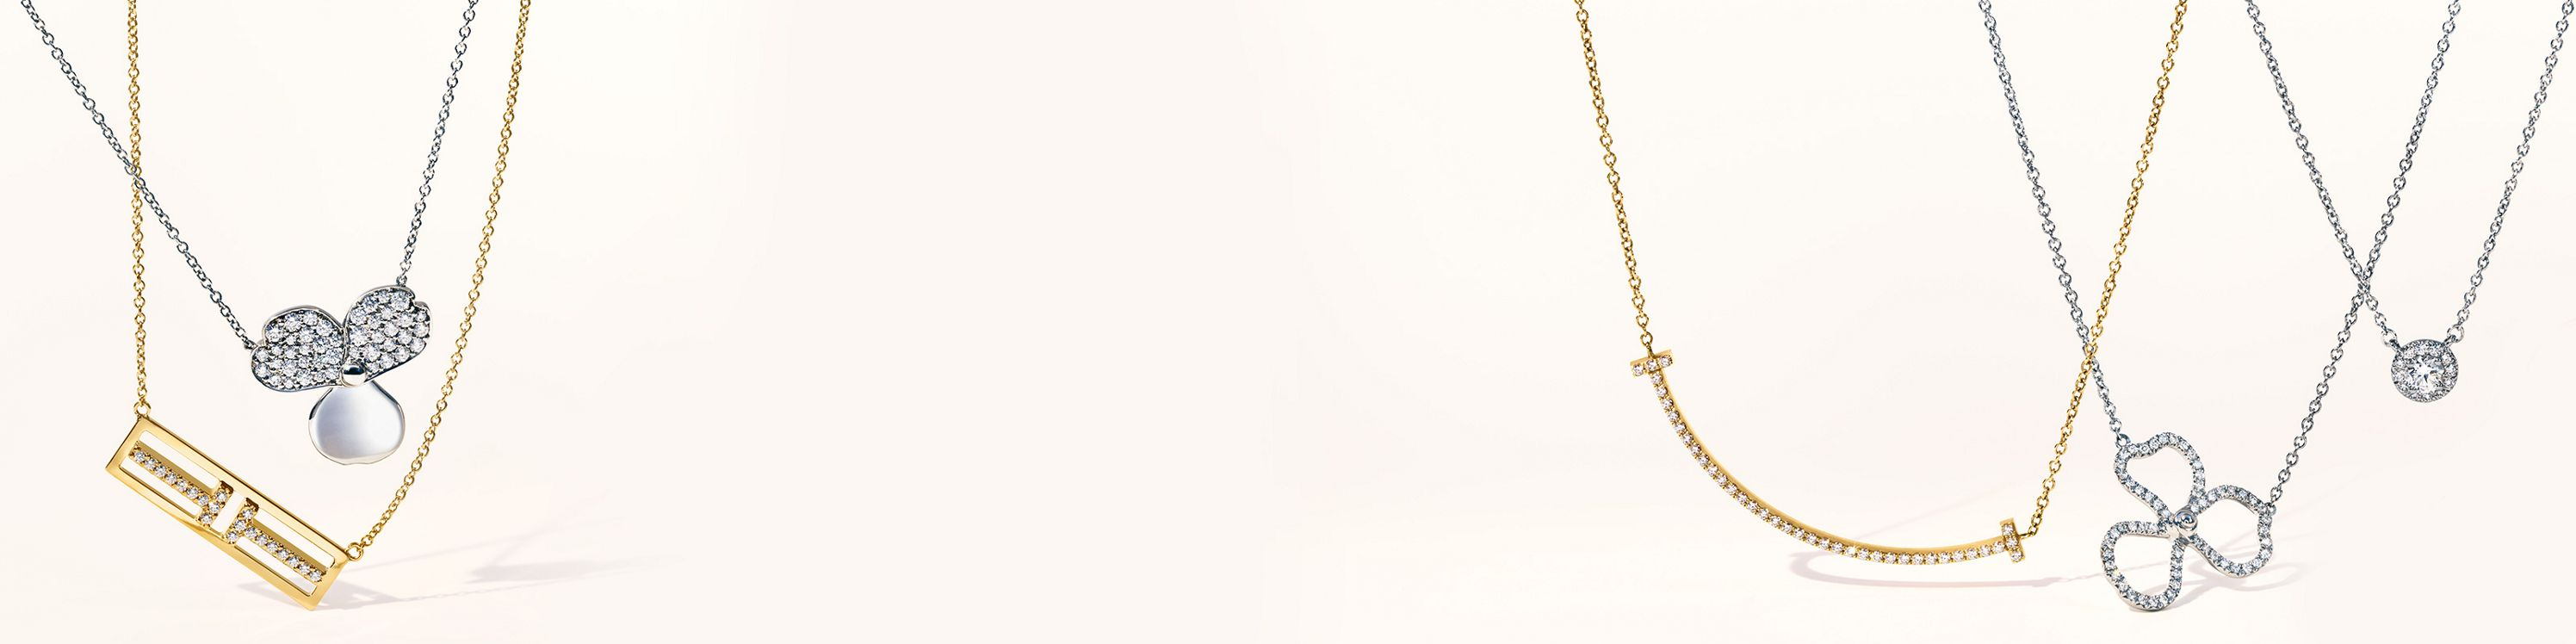 9e8f643f3 Necklaces & Pendants | Tiffany & Co.